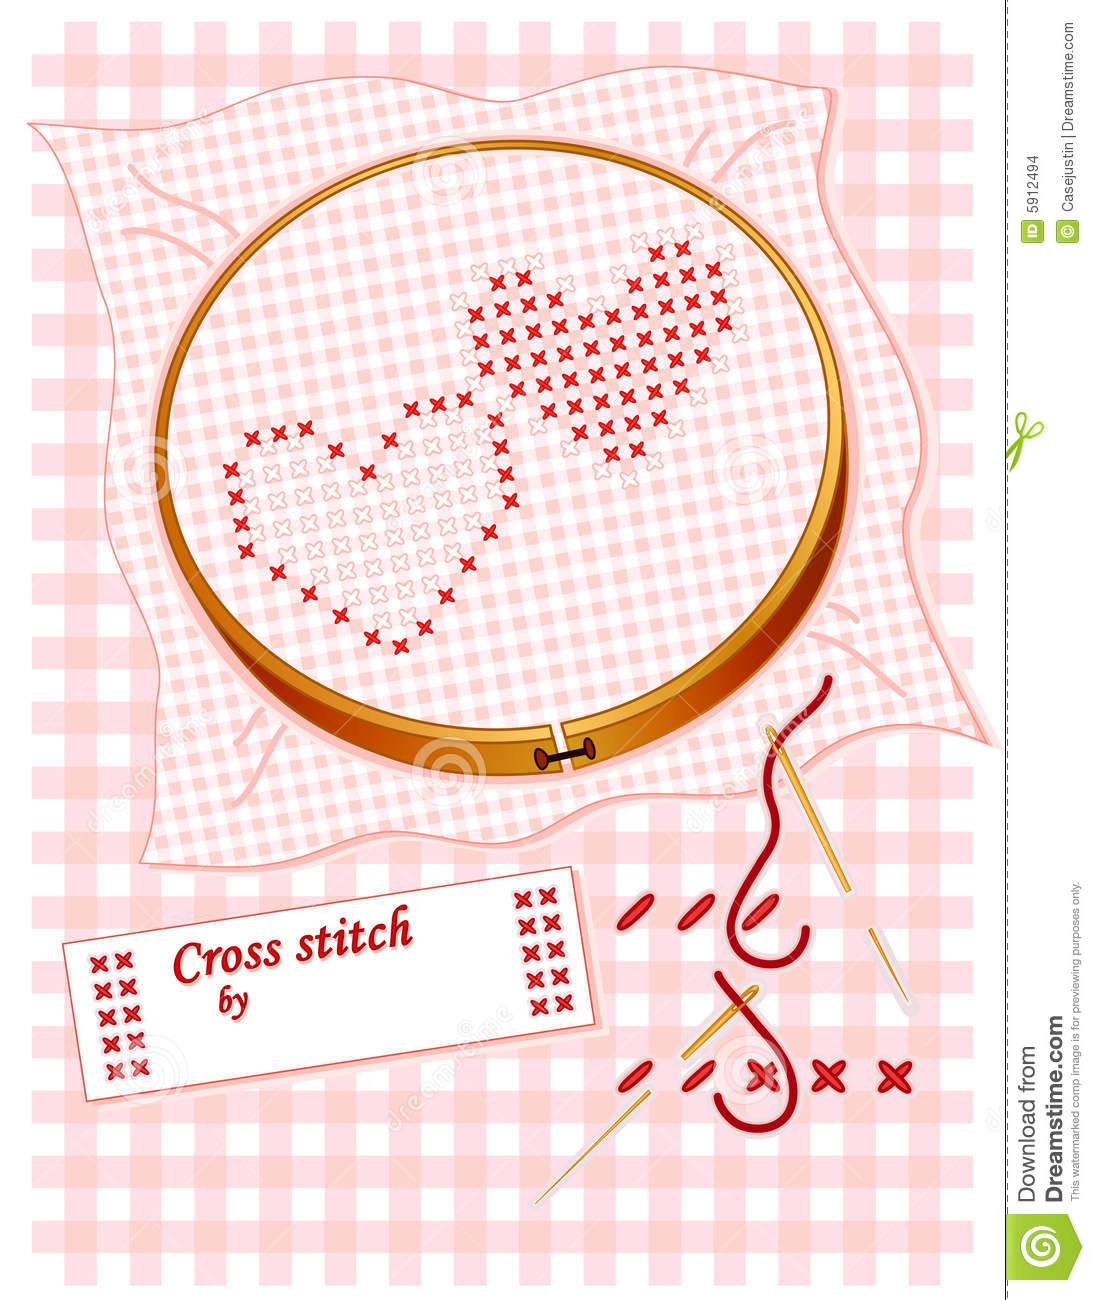 Embroidered Cross Stitch Hearts Stock Images.